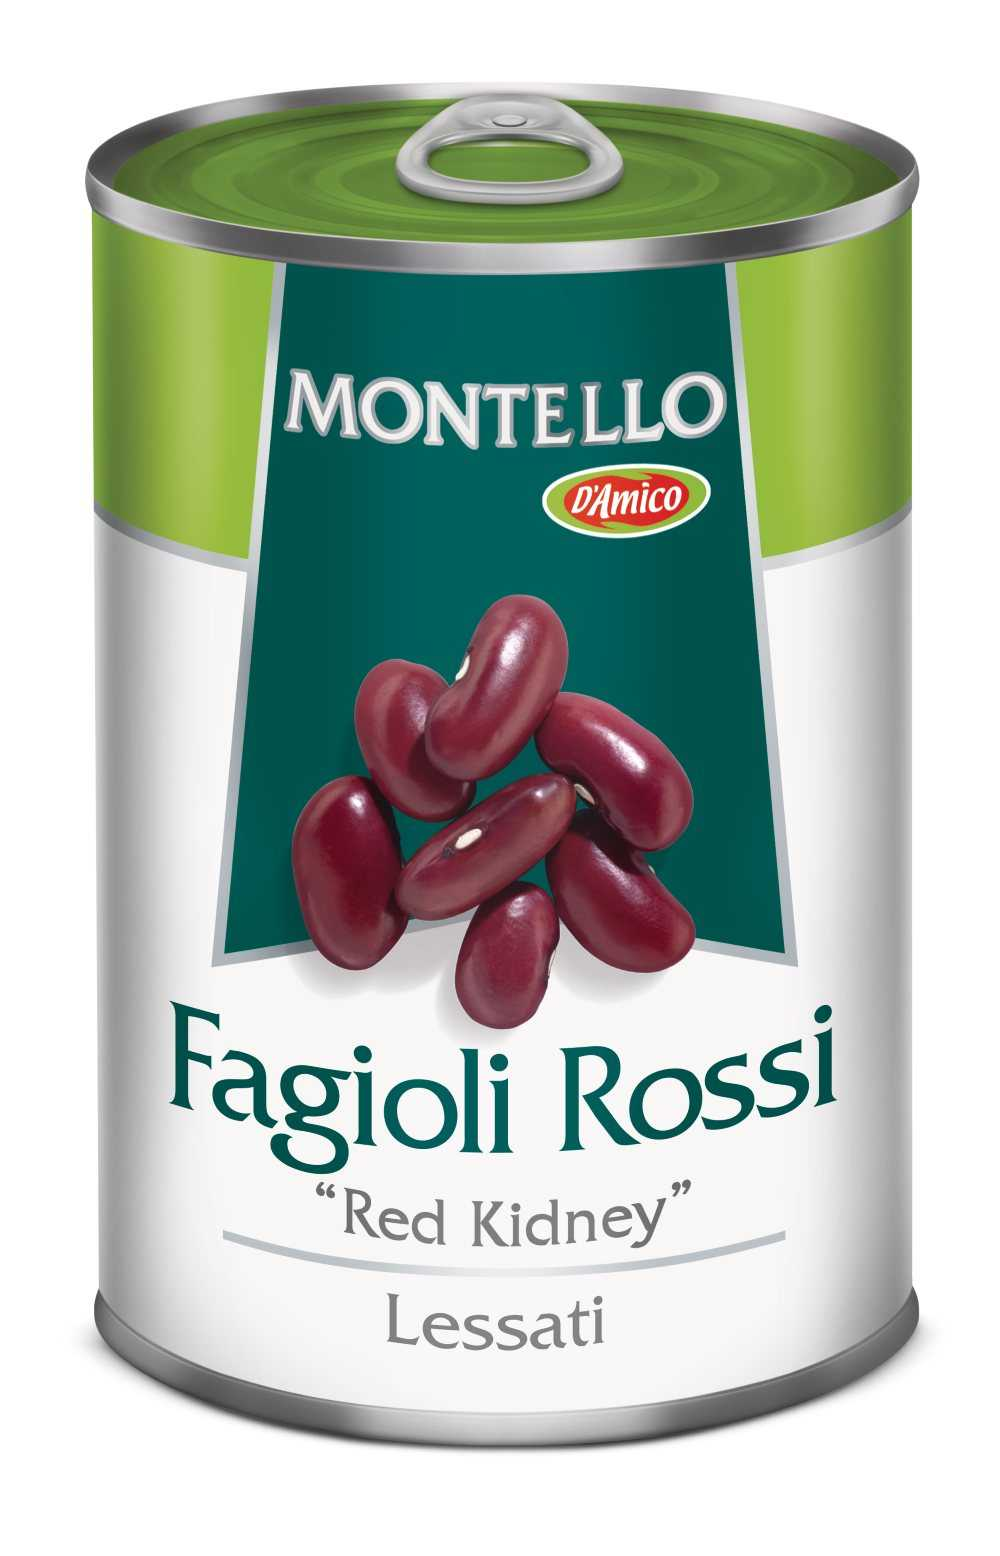 Fagioli Rossi Red Kidney